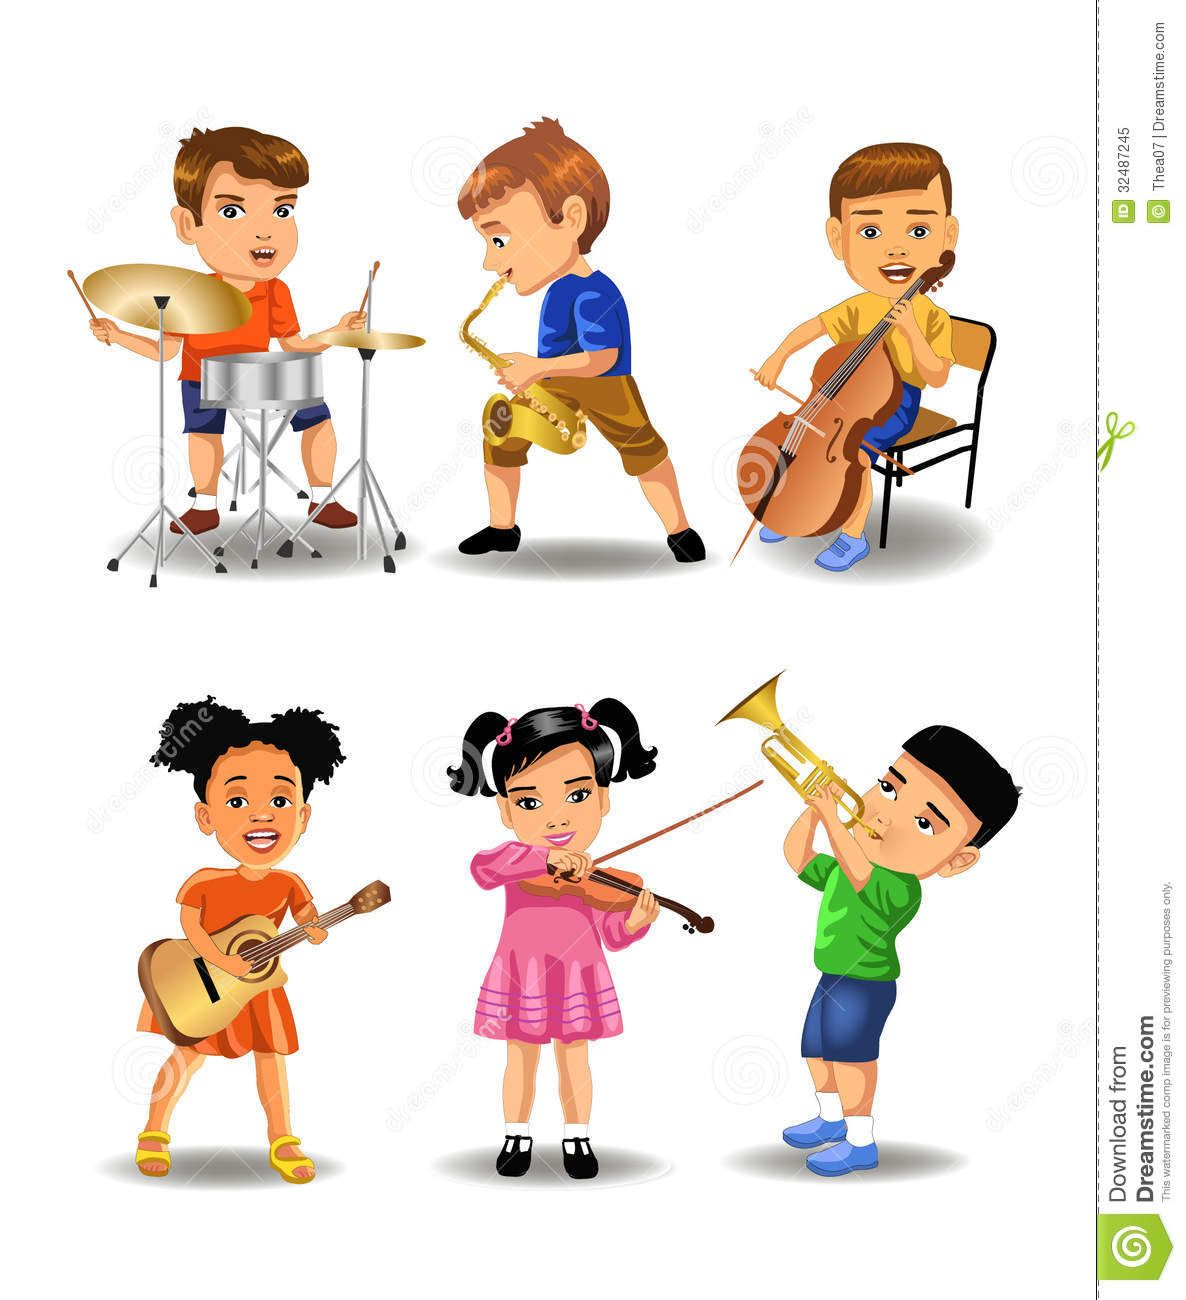 children playing musical instruments clipart.